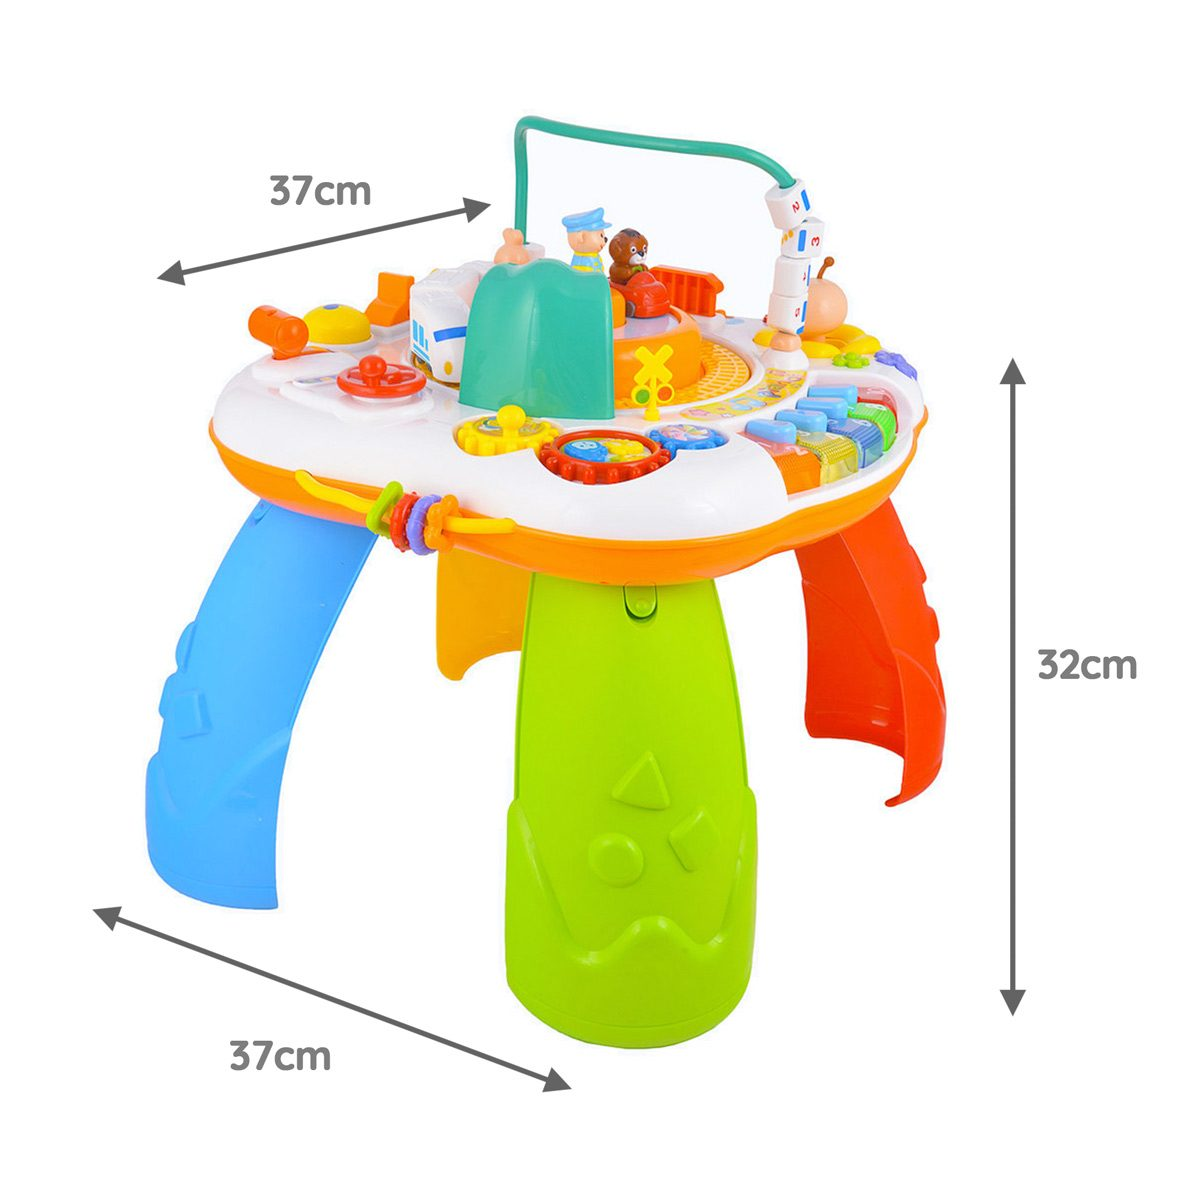 Mini Me & Friends Activity Table Dimensions